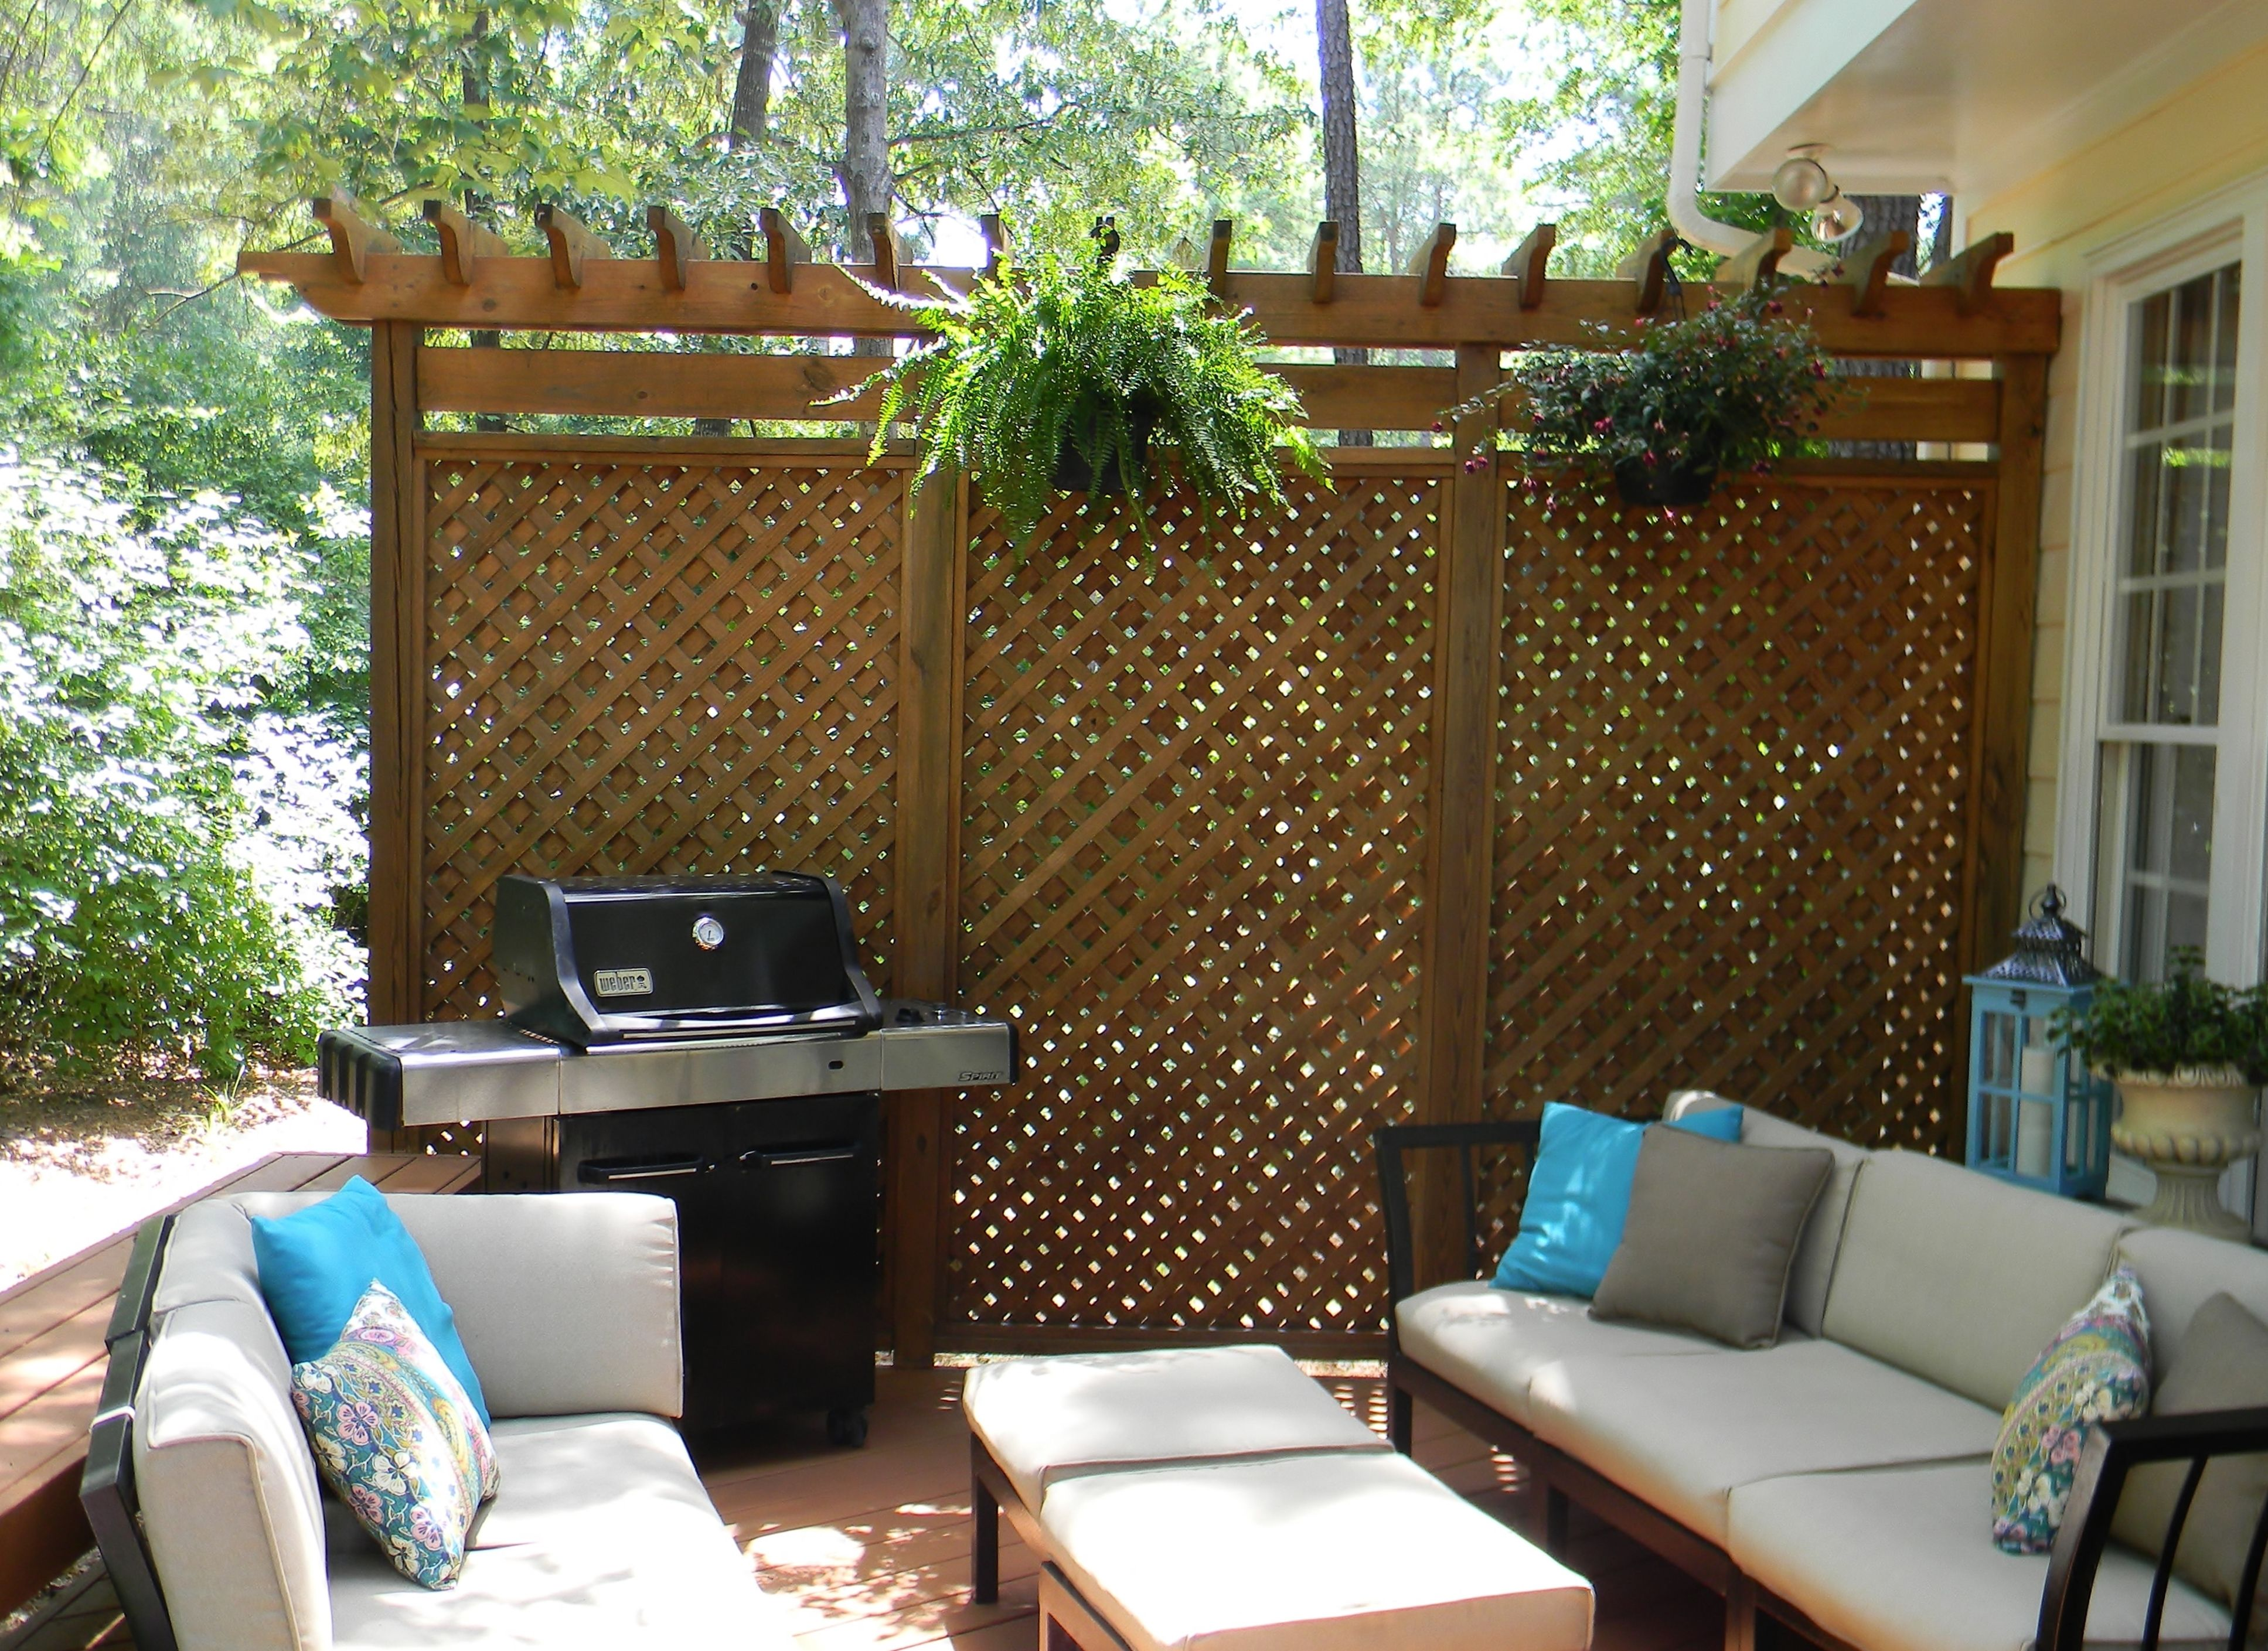 Privacy Screen Ideas For Backyard Pin By Misty Holley On Diy Home Decor Pinterest